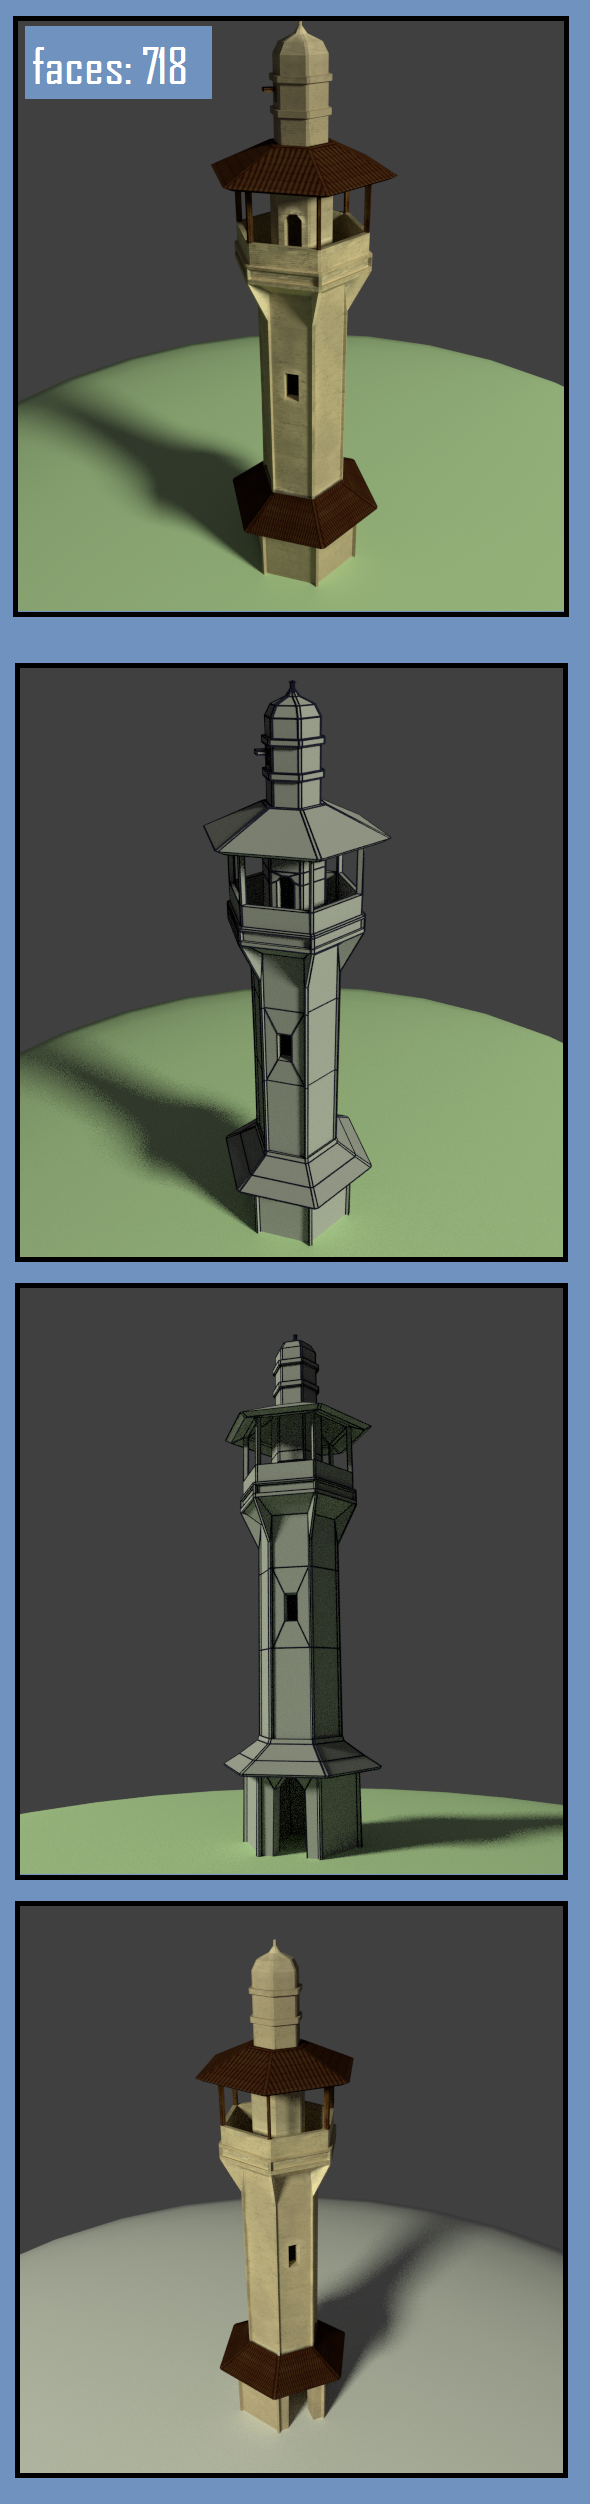 3DOcean arab moorish minaret low poly building model 11513811